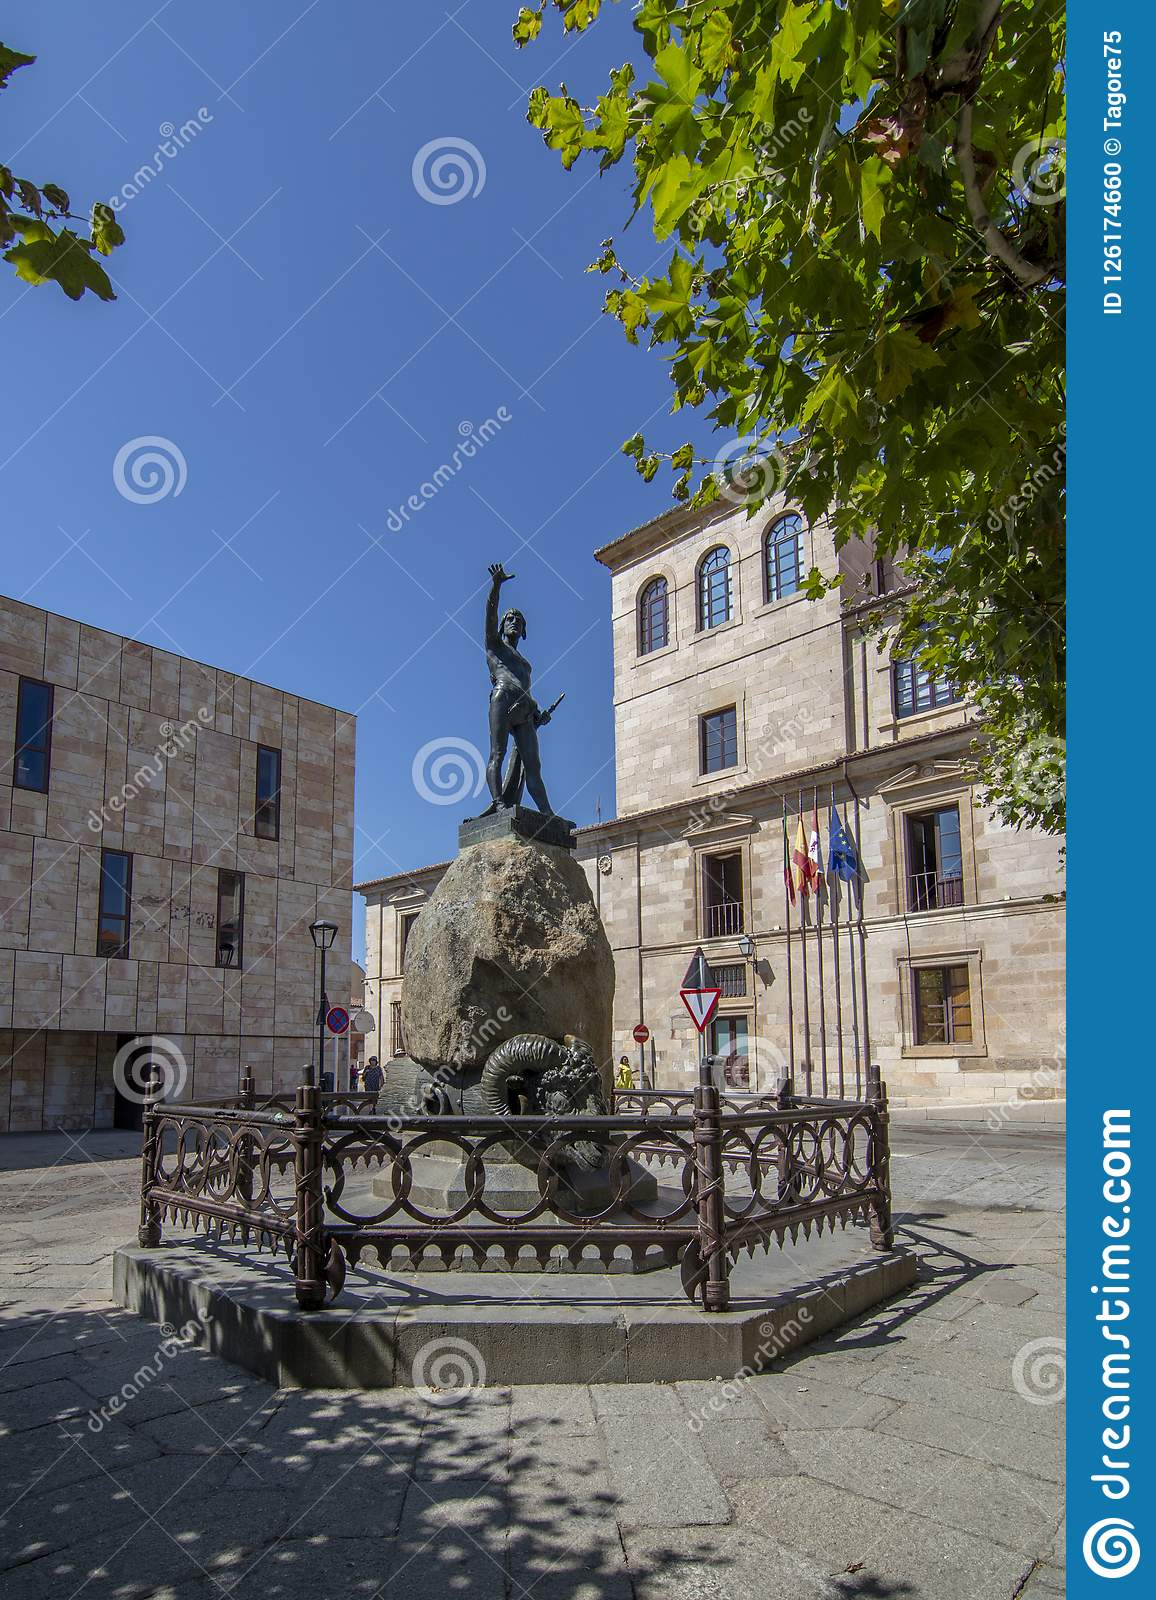 Plaza Viriato with sculpture of the same one in Zamora Spain